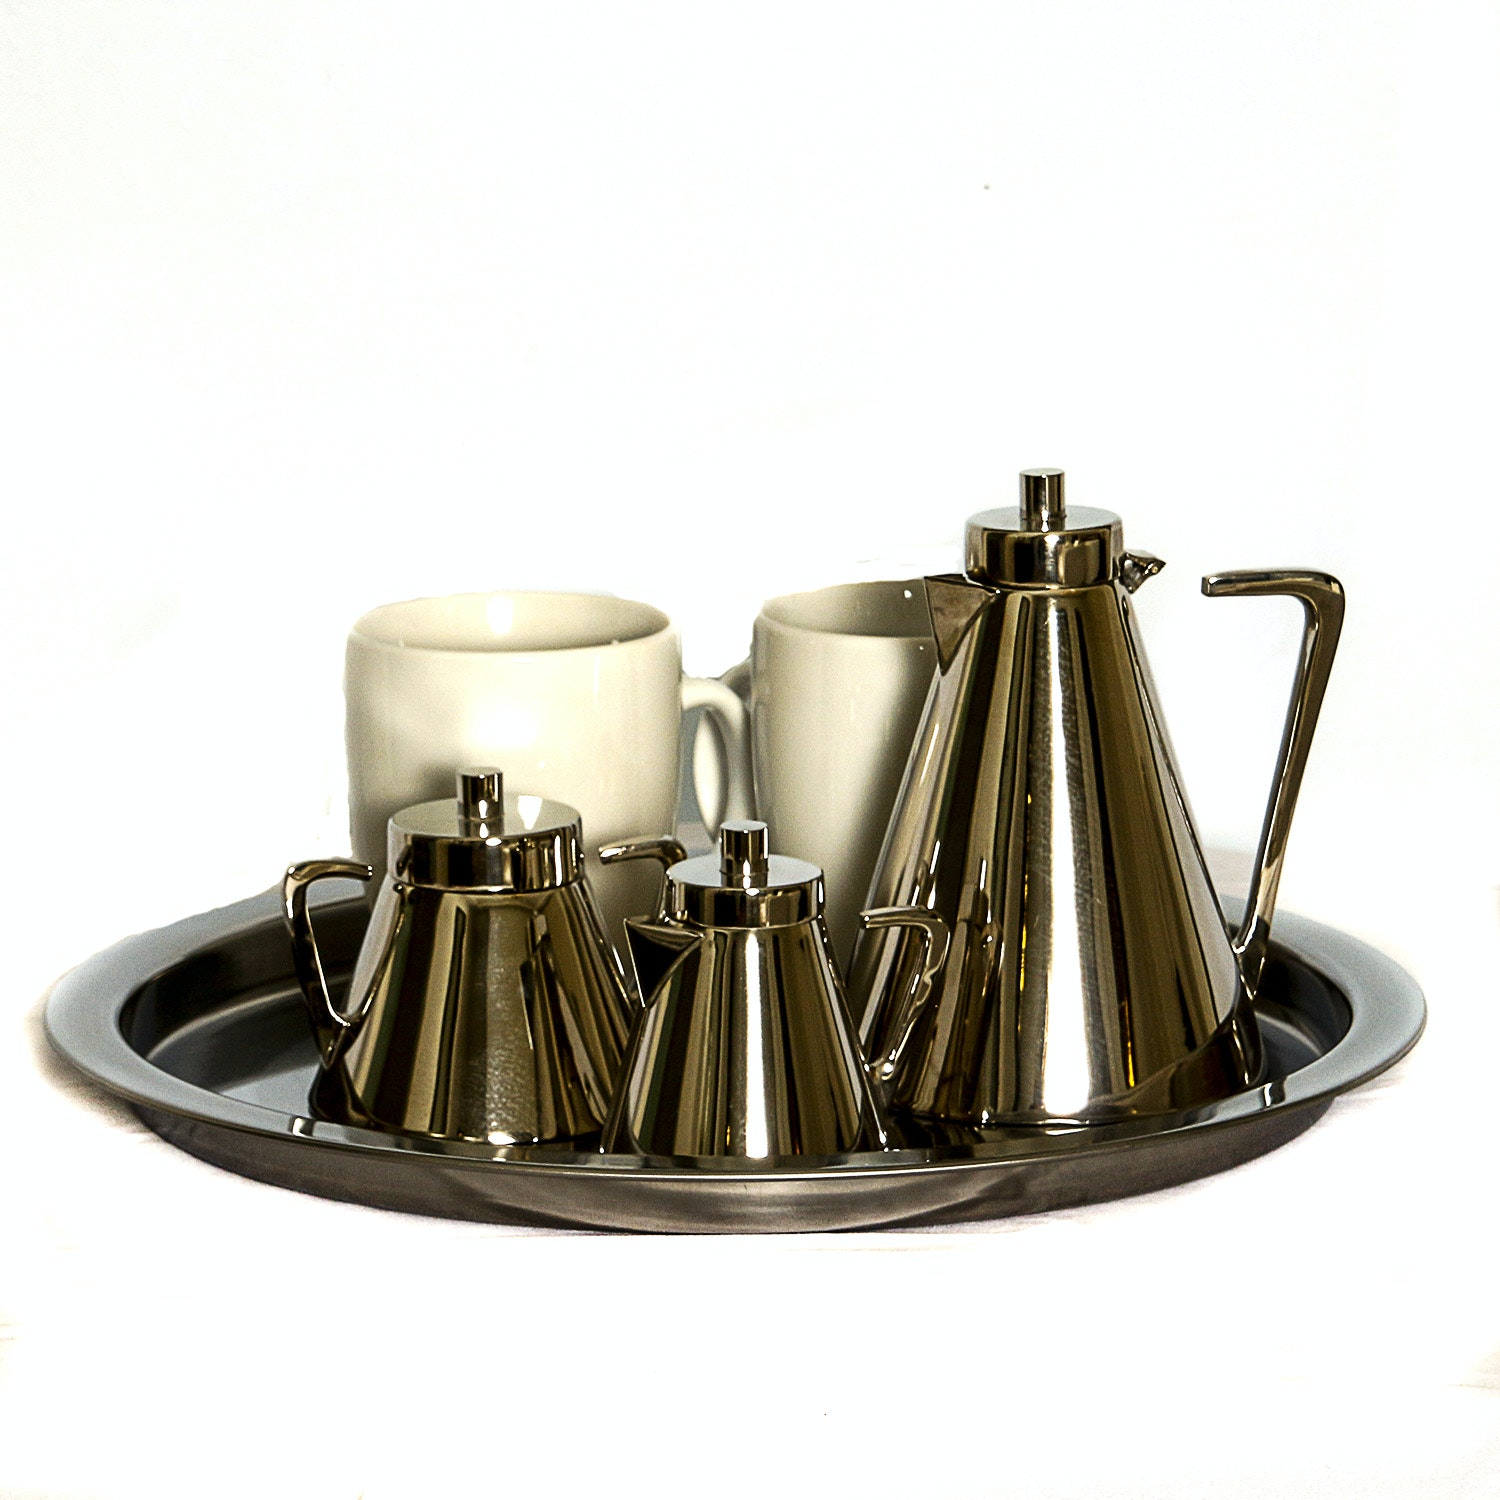 Silver-Toned Metal Tea Service Set with Ceramic Coffee Mugs